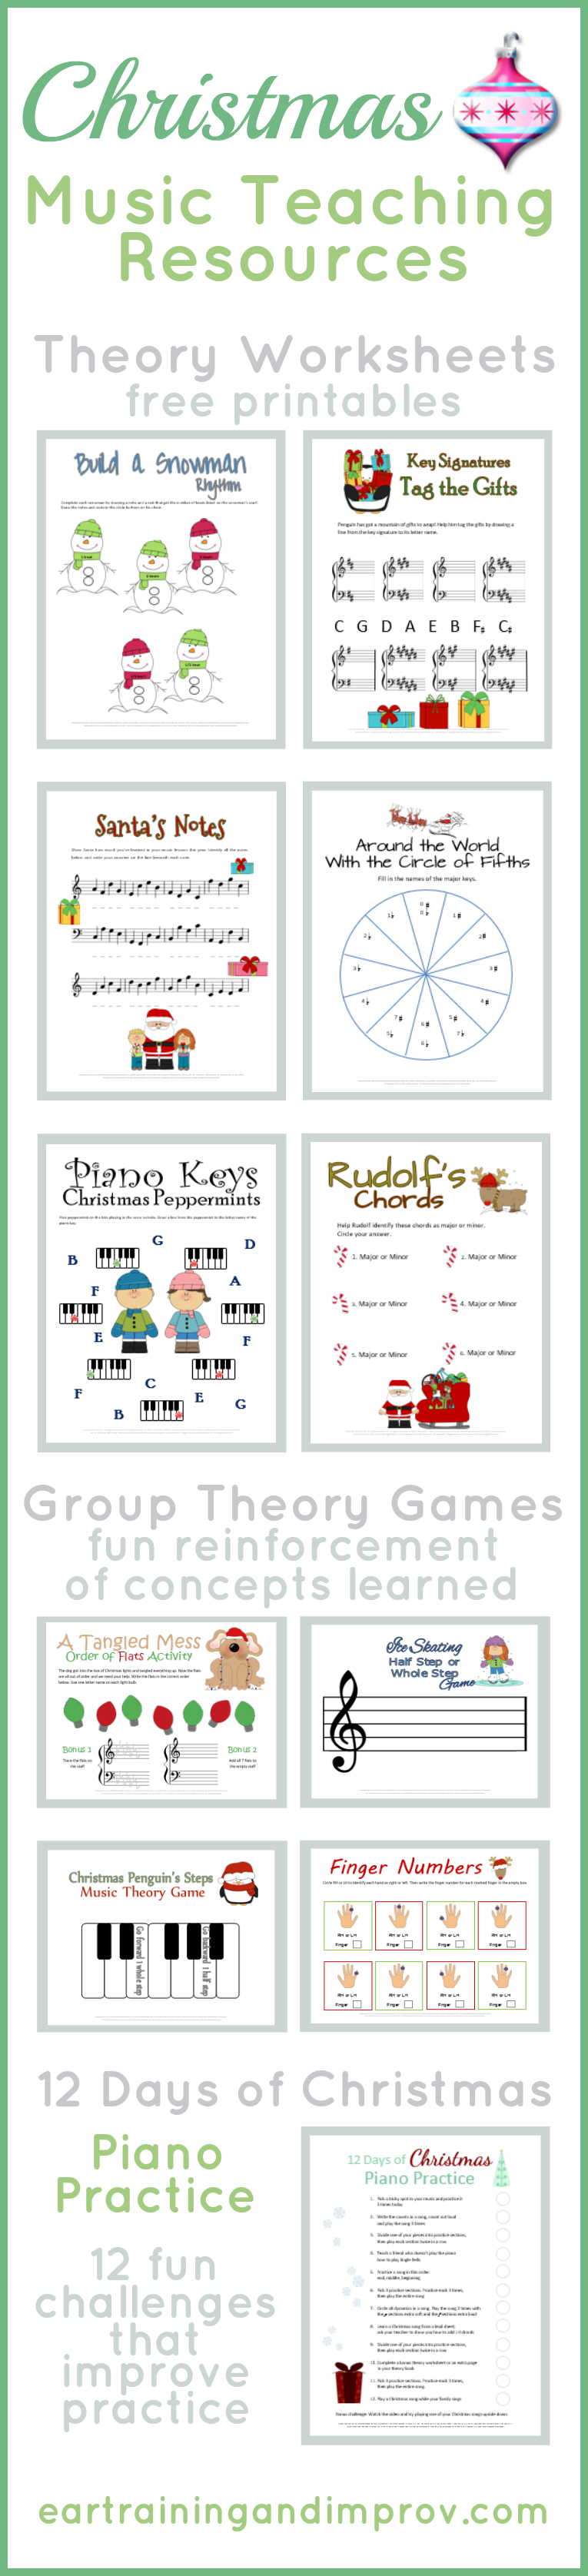 Christmas Music Theory Worksheets - 20+ Free Printables - Free Printable Group Games